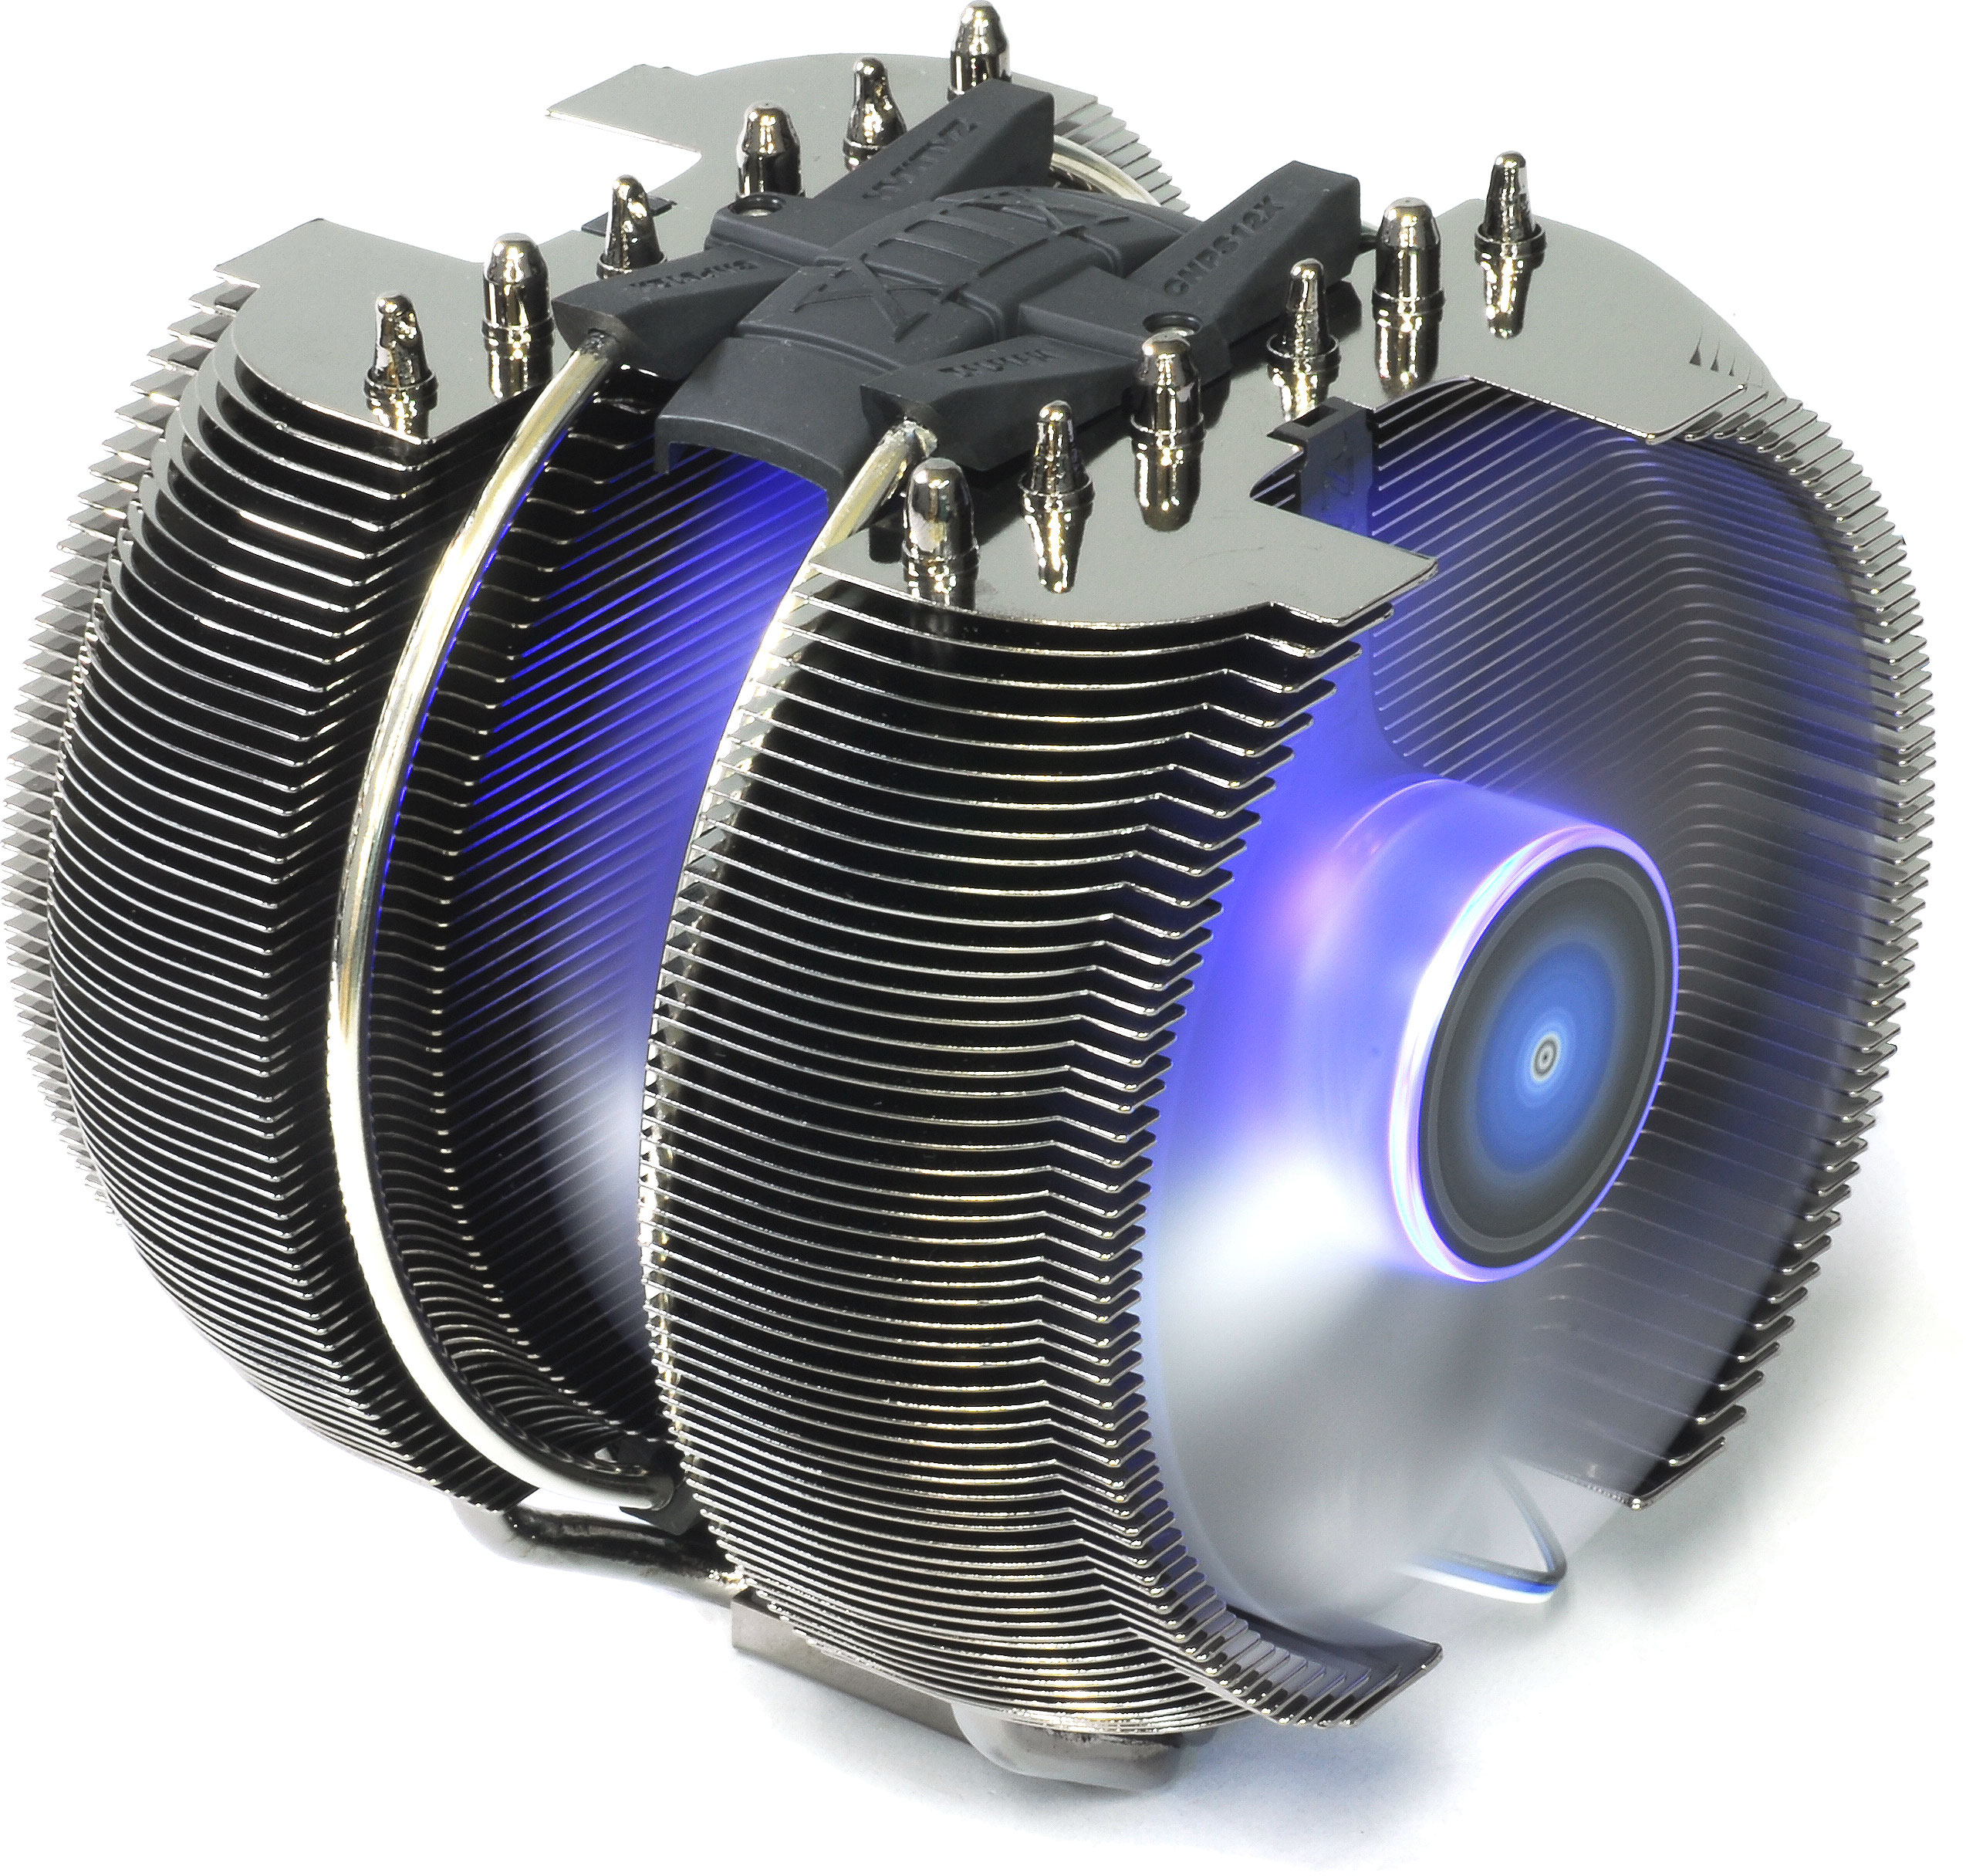 Zalman CNPS12X Ultimate Performance Triple Fan CPU Cooler #272AA4